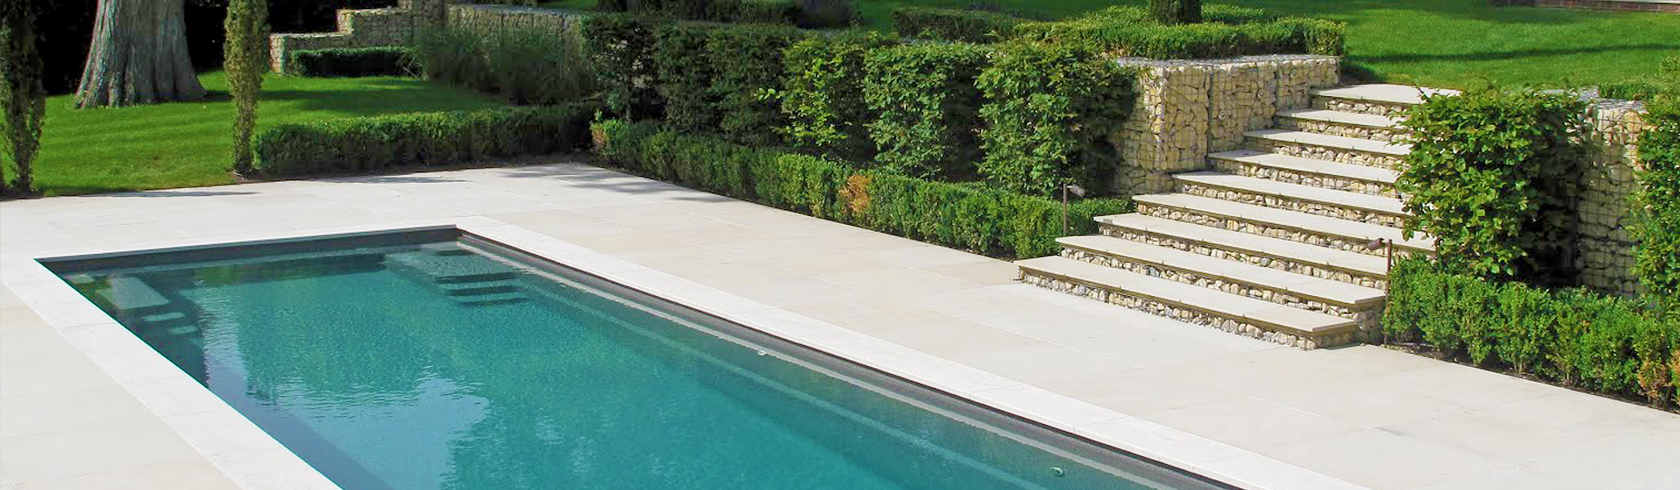 Ceramic Swimming Pool Design U0026 Installation